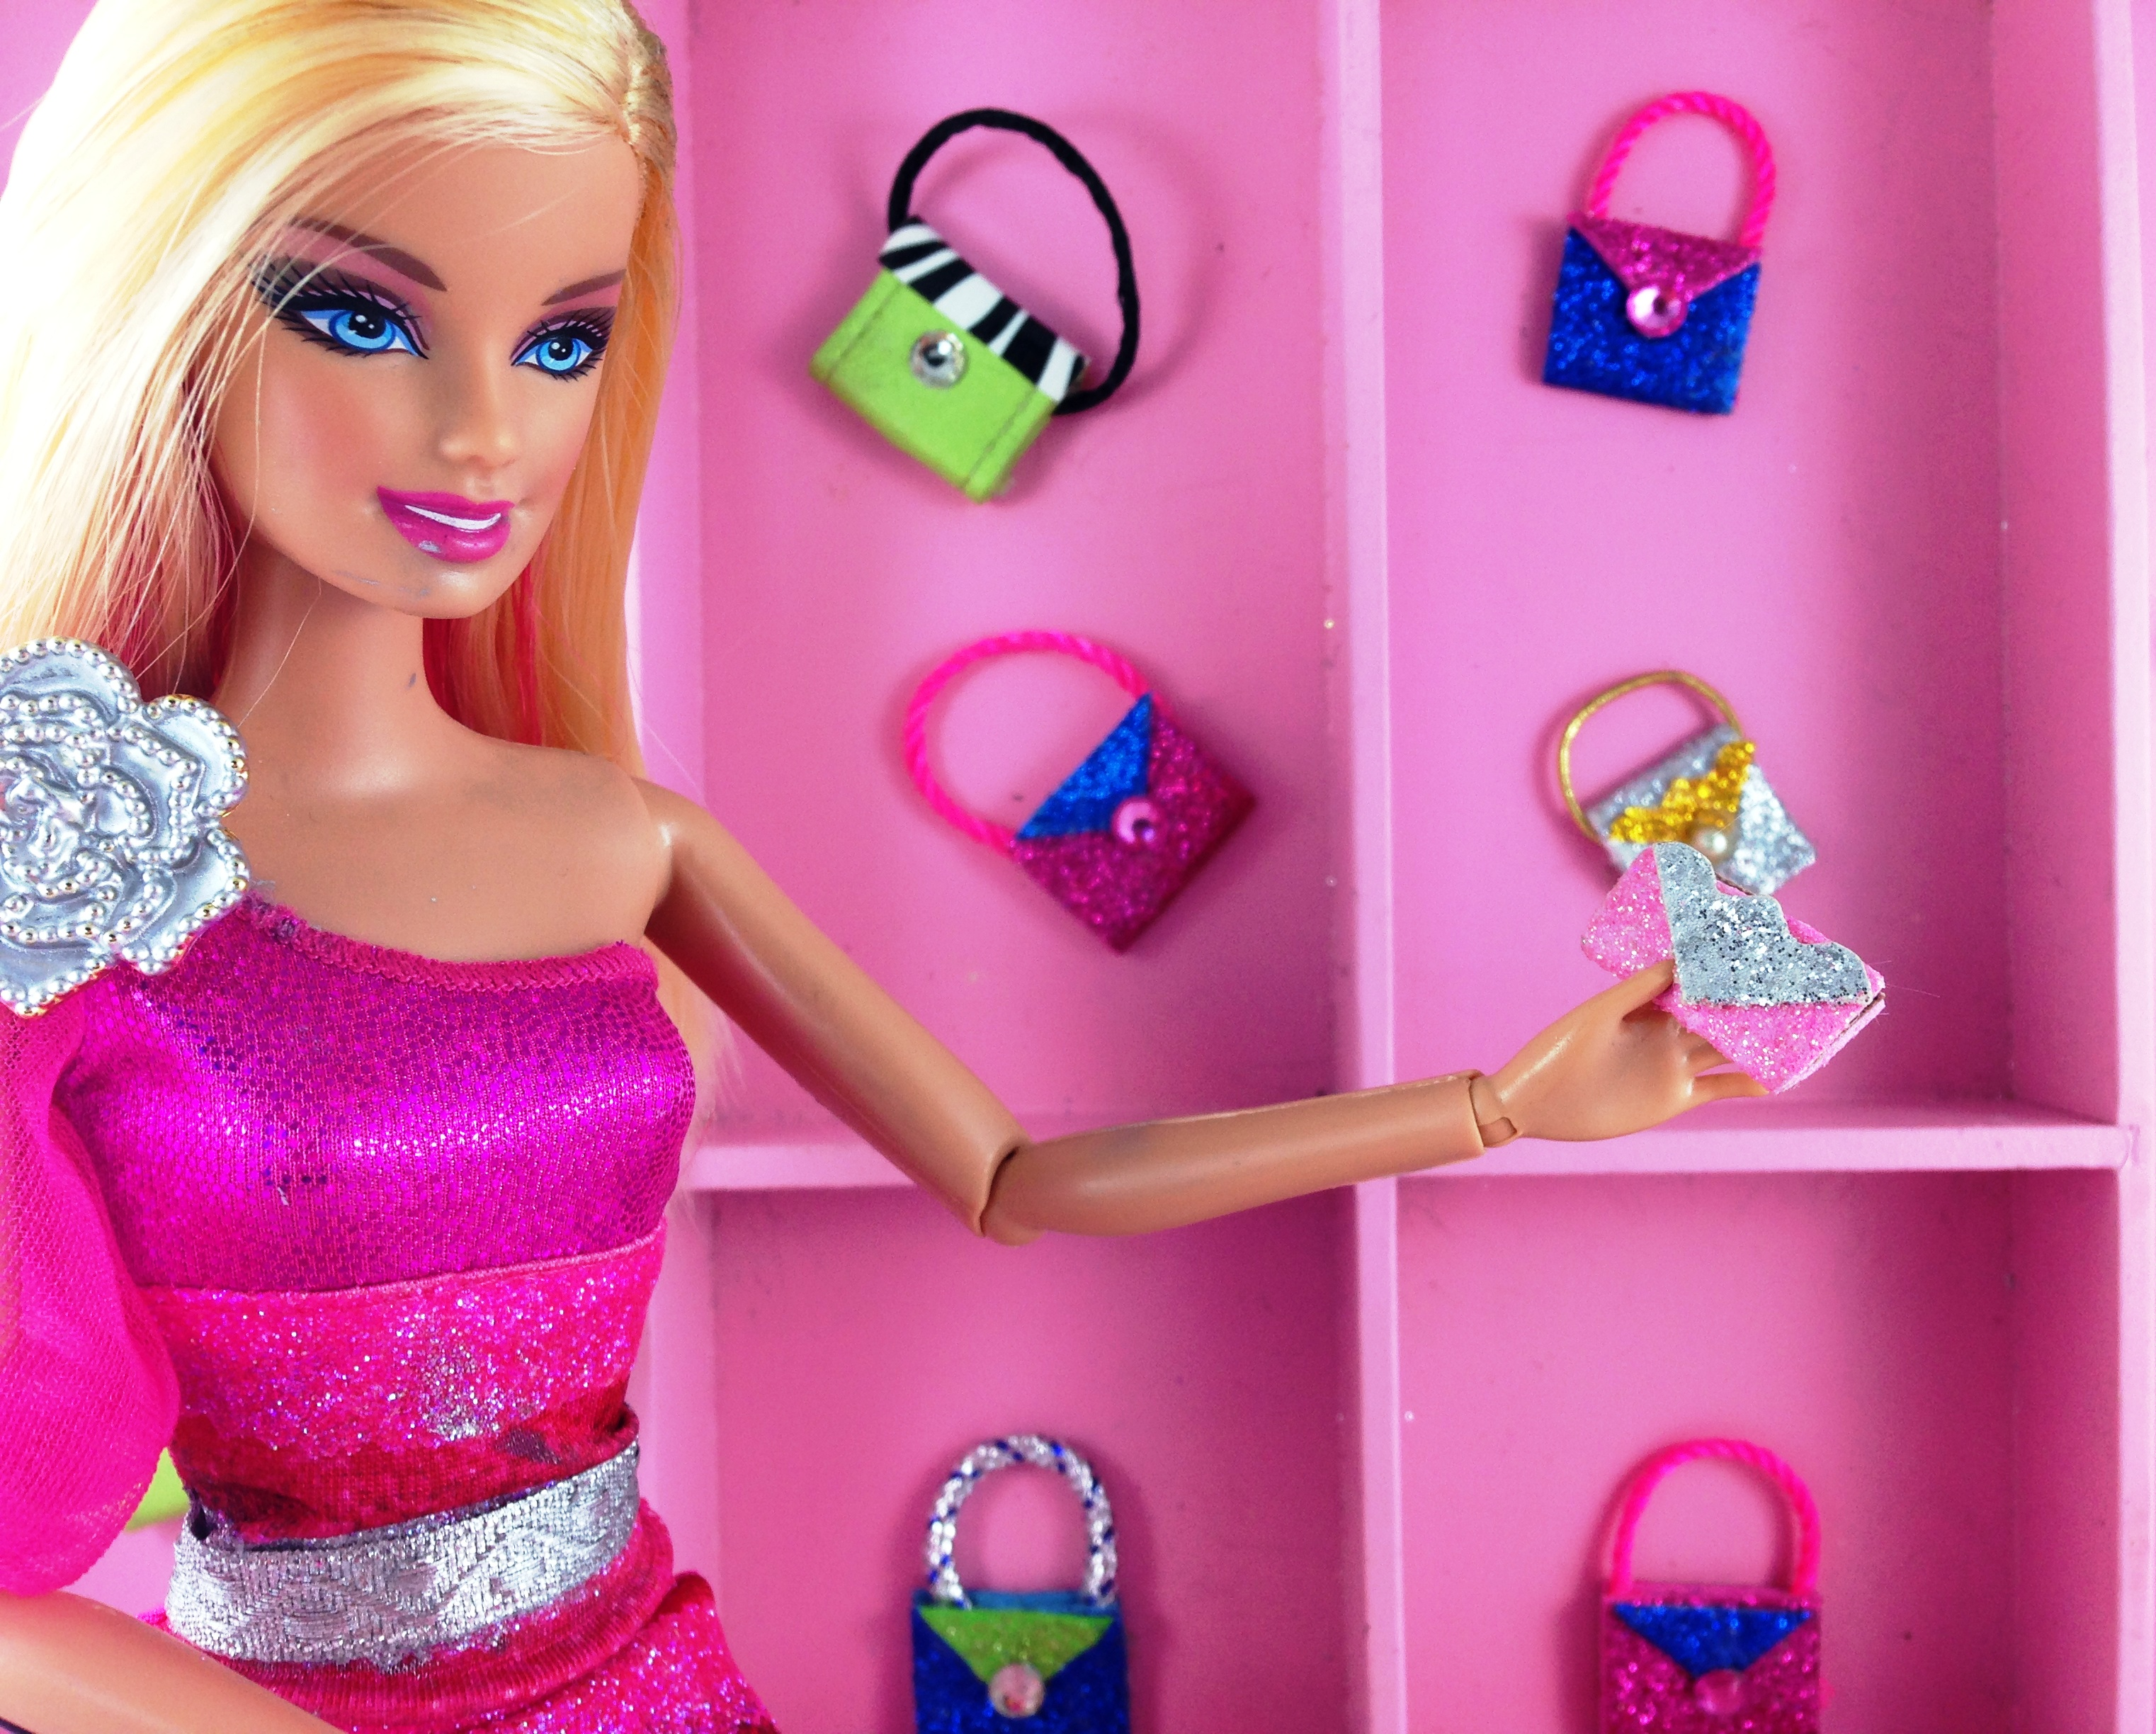 Easy DIY sparkly Barbie Doll purses made with sticky back sparkling foam from dollar store DIY Barbie Doll Easy NoSew Hand Made Purses #barbiedoll #accessories #purses #handmade #sparkle #Starrcreative